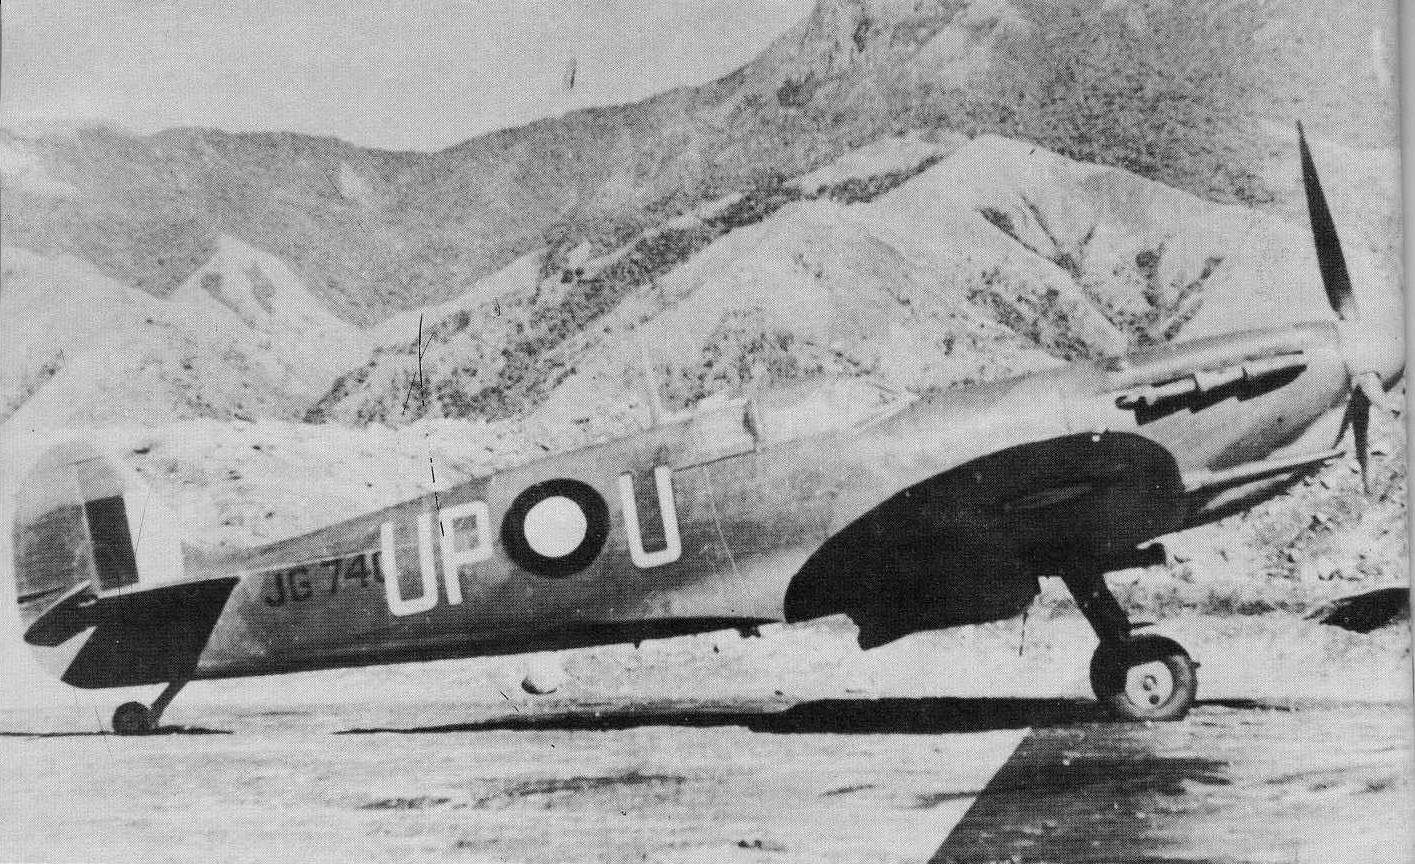 JG740 Later Numbered A58 173 Of Sqn Ldr AC Rawlinson No 79 Squadron At Goodenough Island In 1943 Via Frank Smith